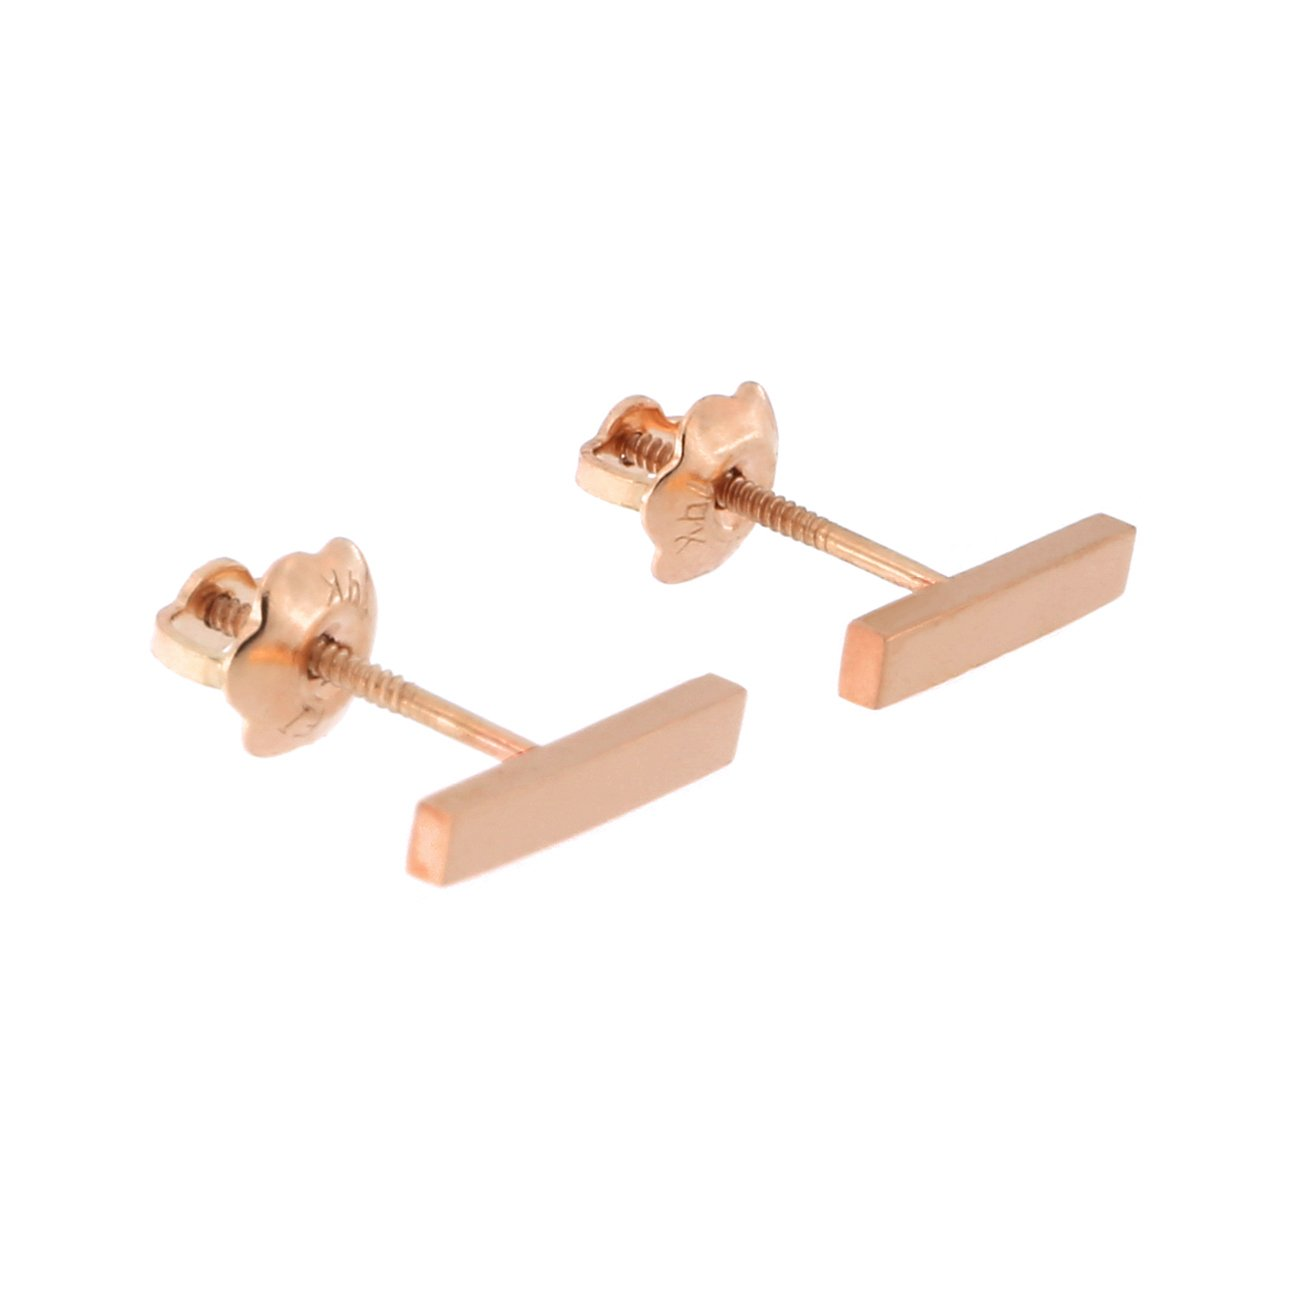 Automic Gold Solid 14k Yellow, White or Rose Gold Bar Earrings (Rose Gold - Screwback)